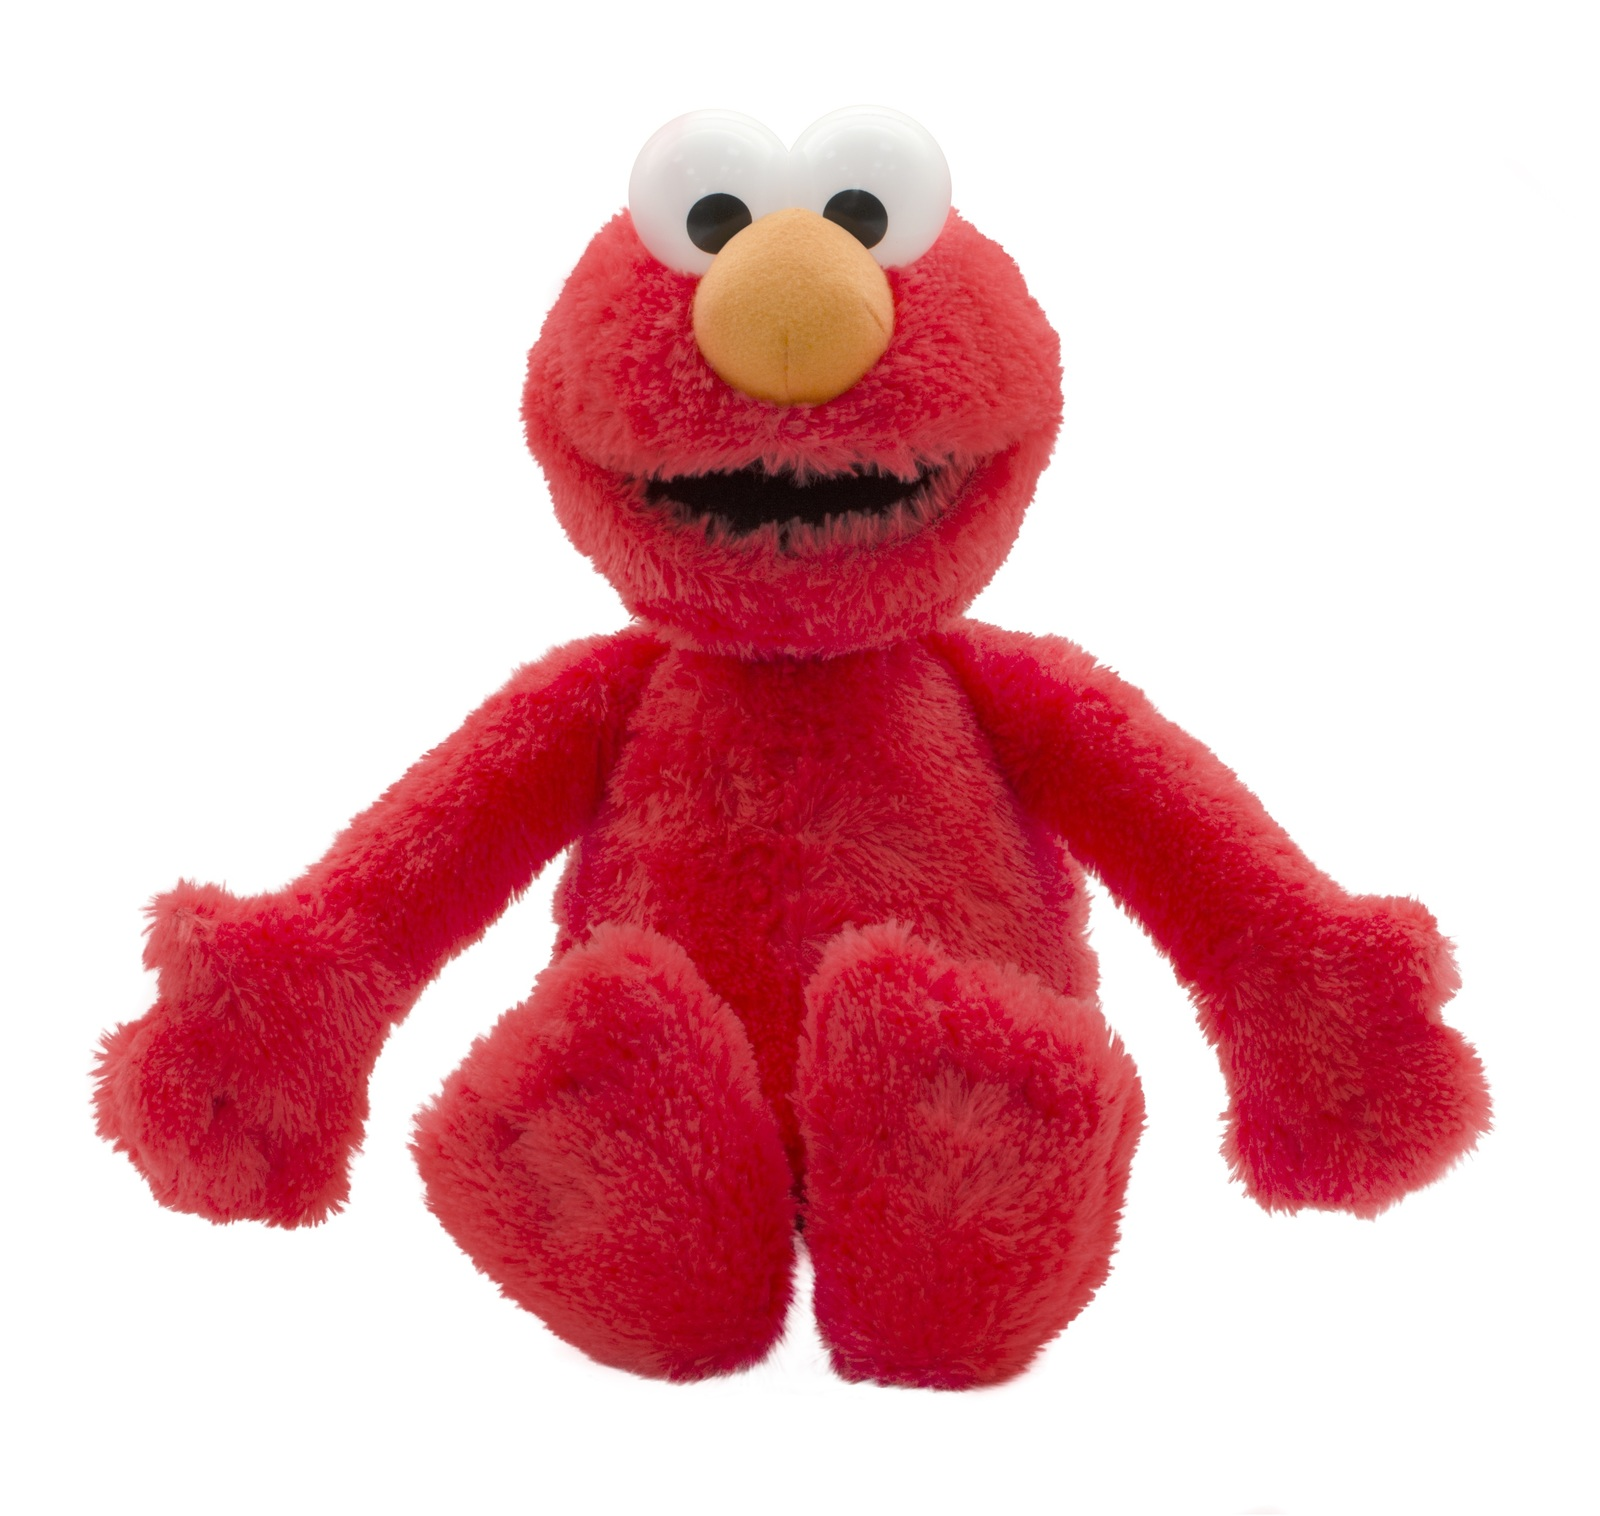 Sesame Street: Tickle Me Elmo - Soft Toy image